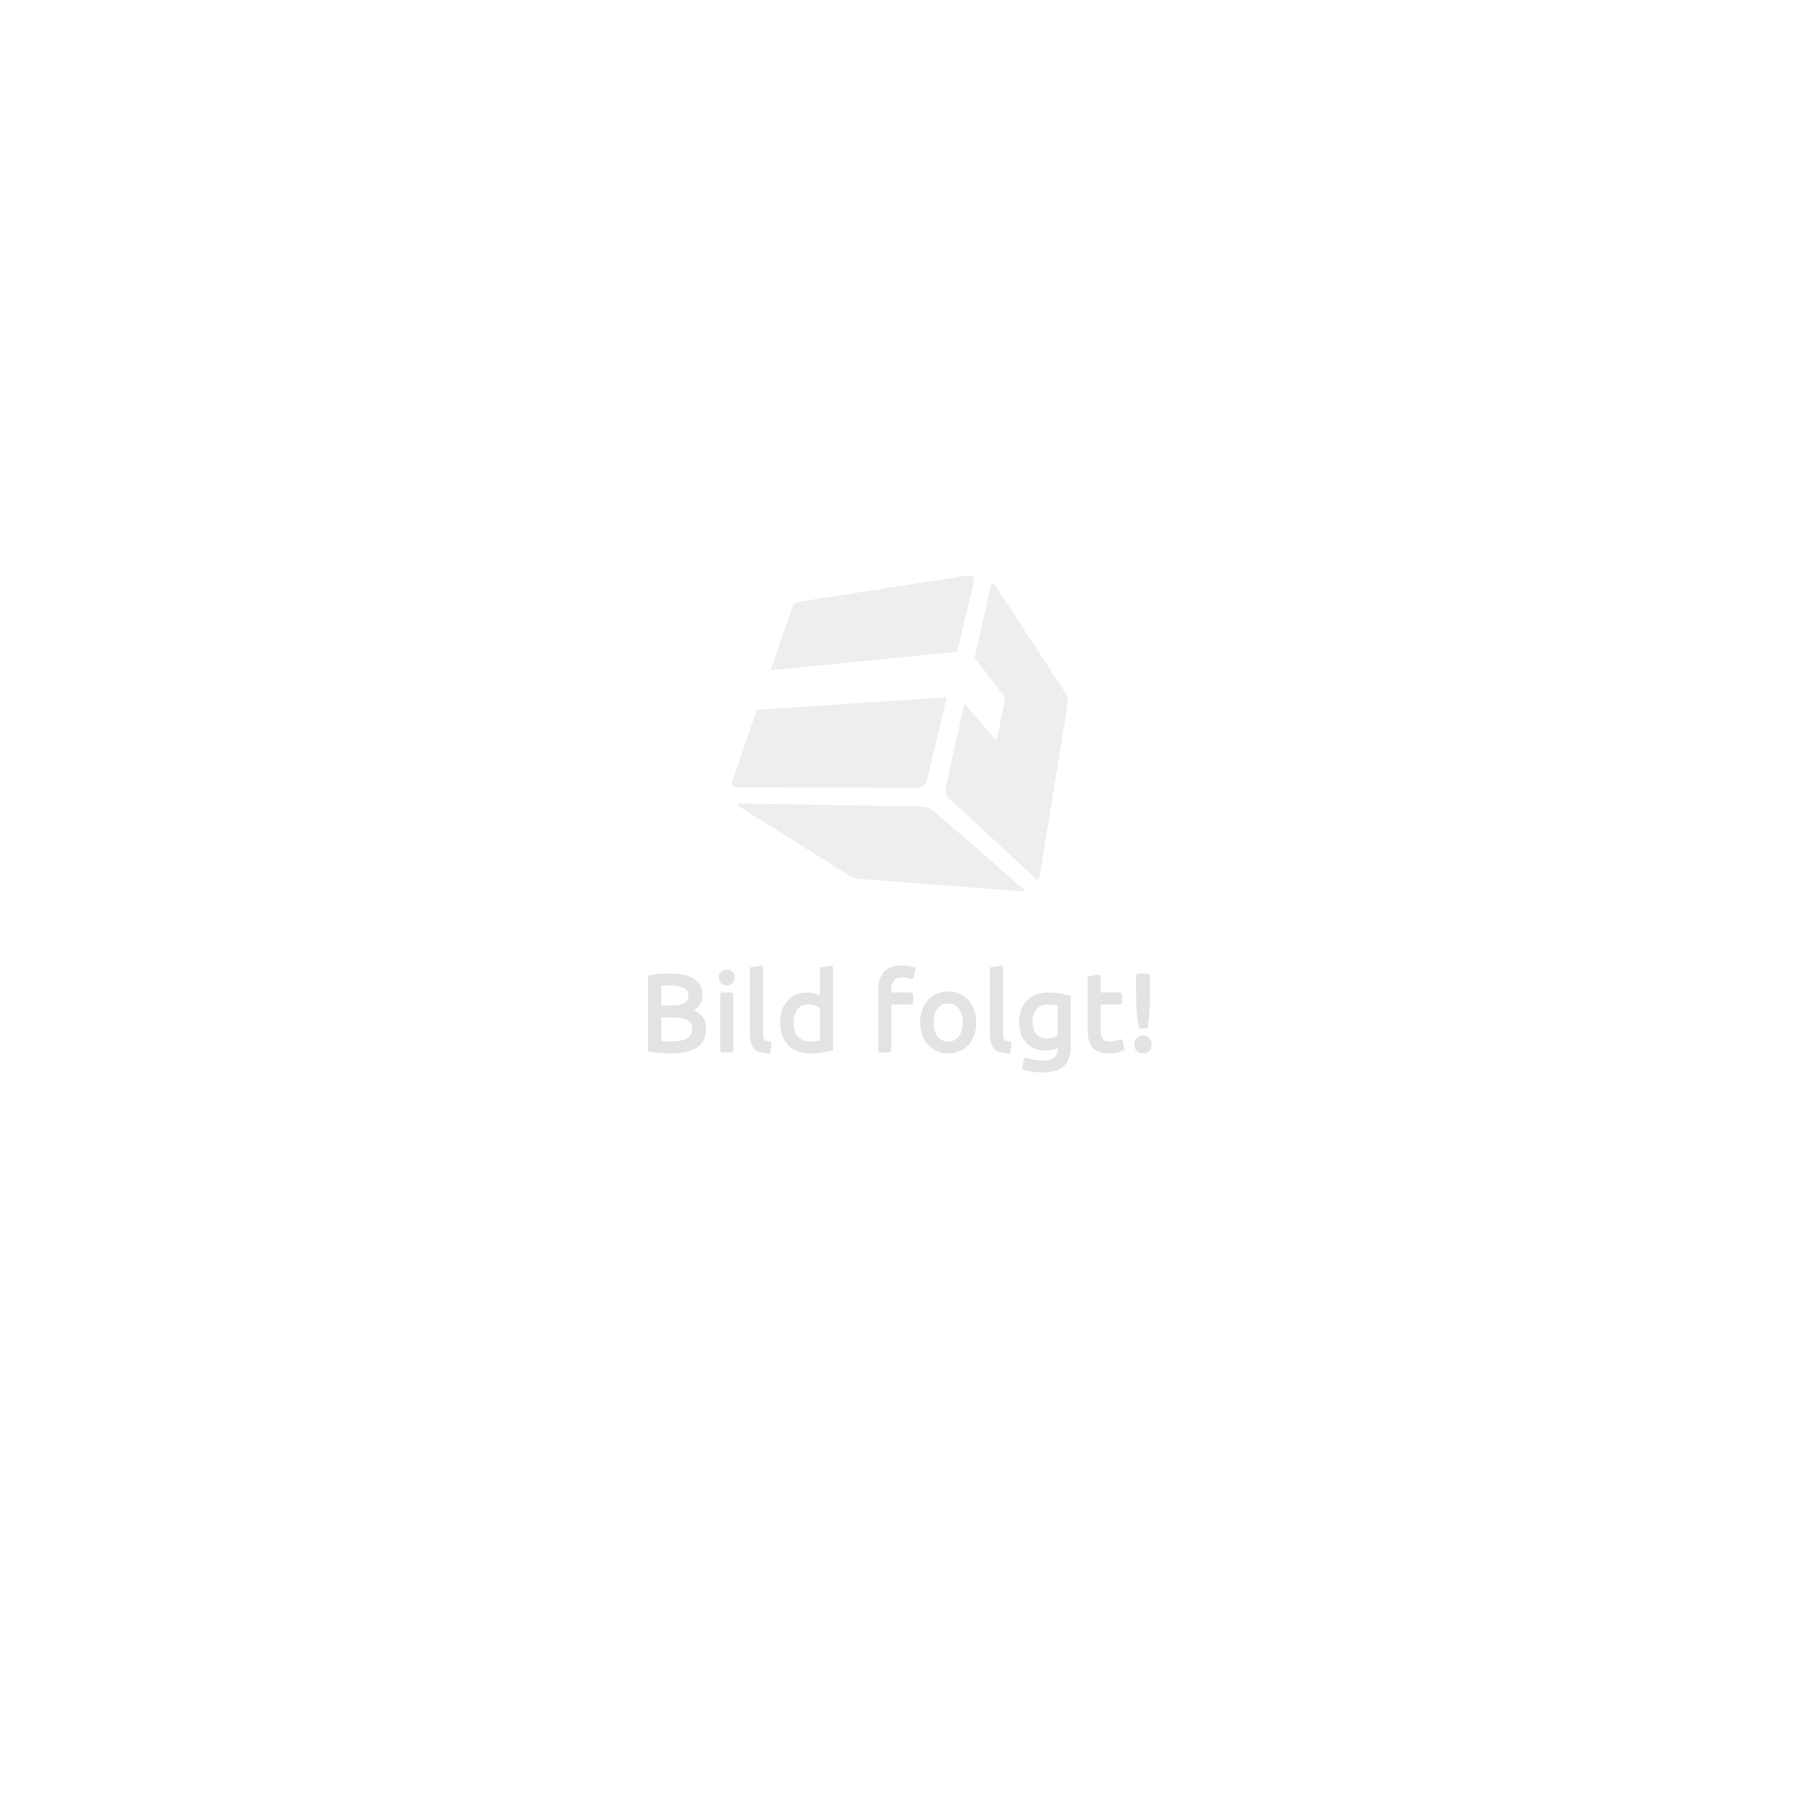 Dining table and chair SET Brandenburg 6+1 white